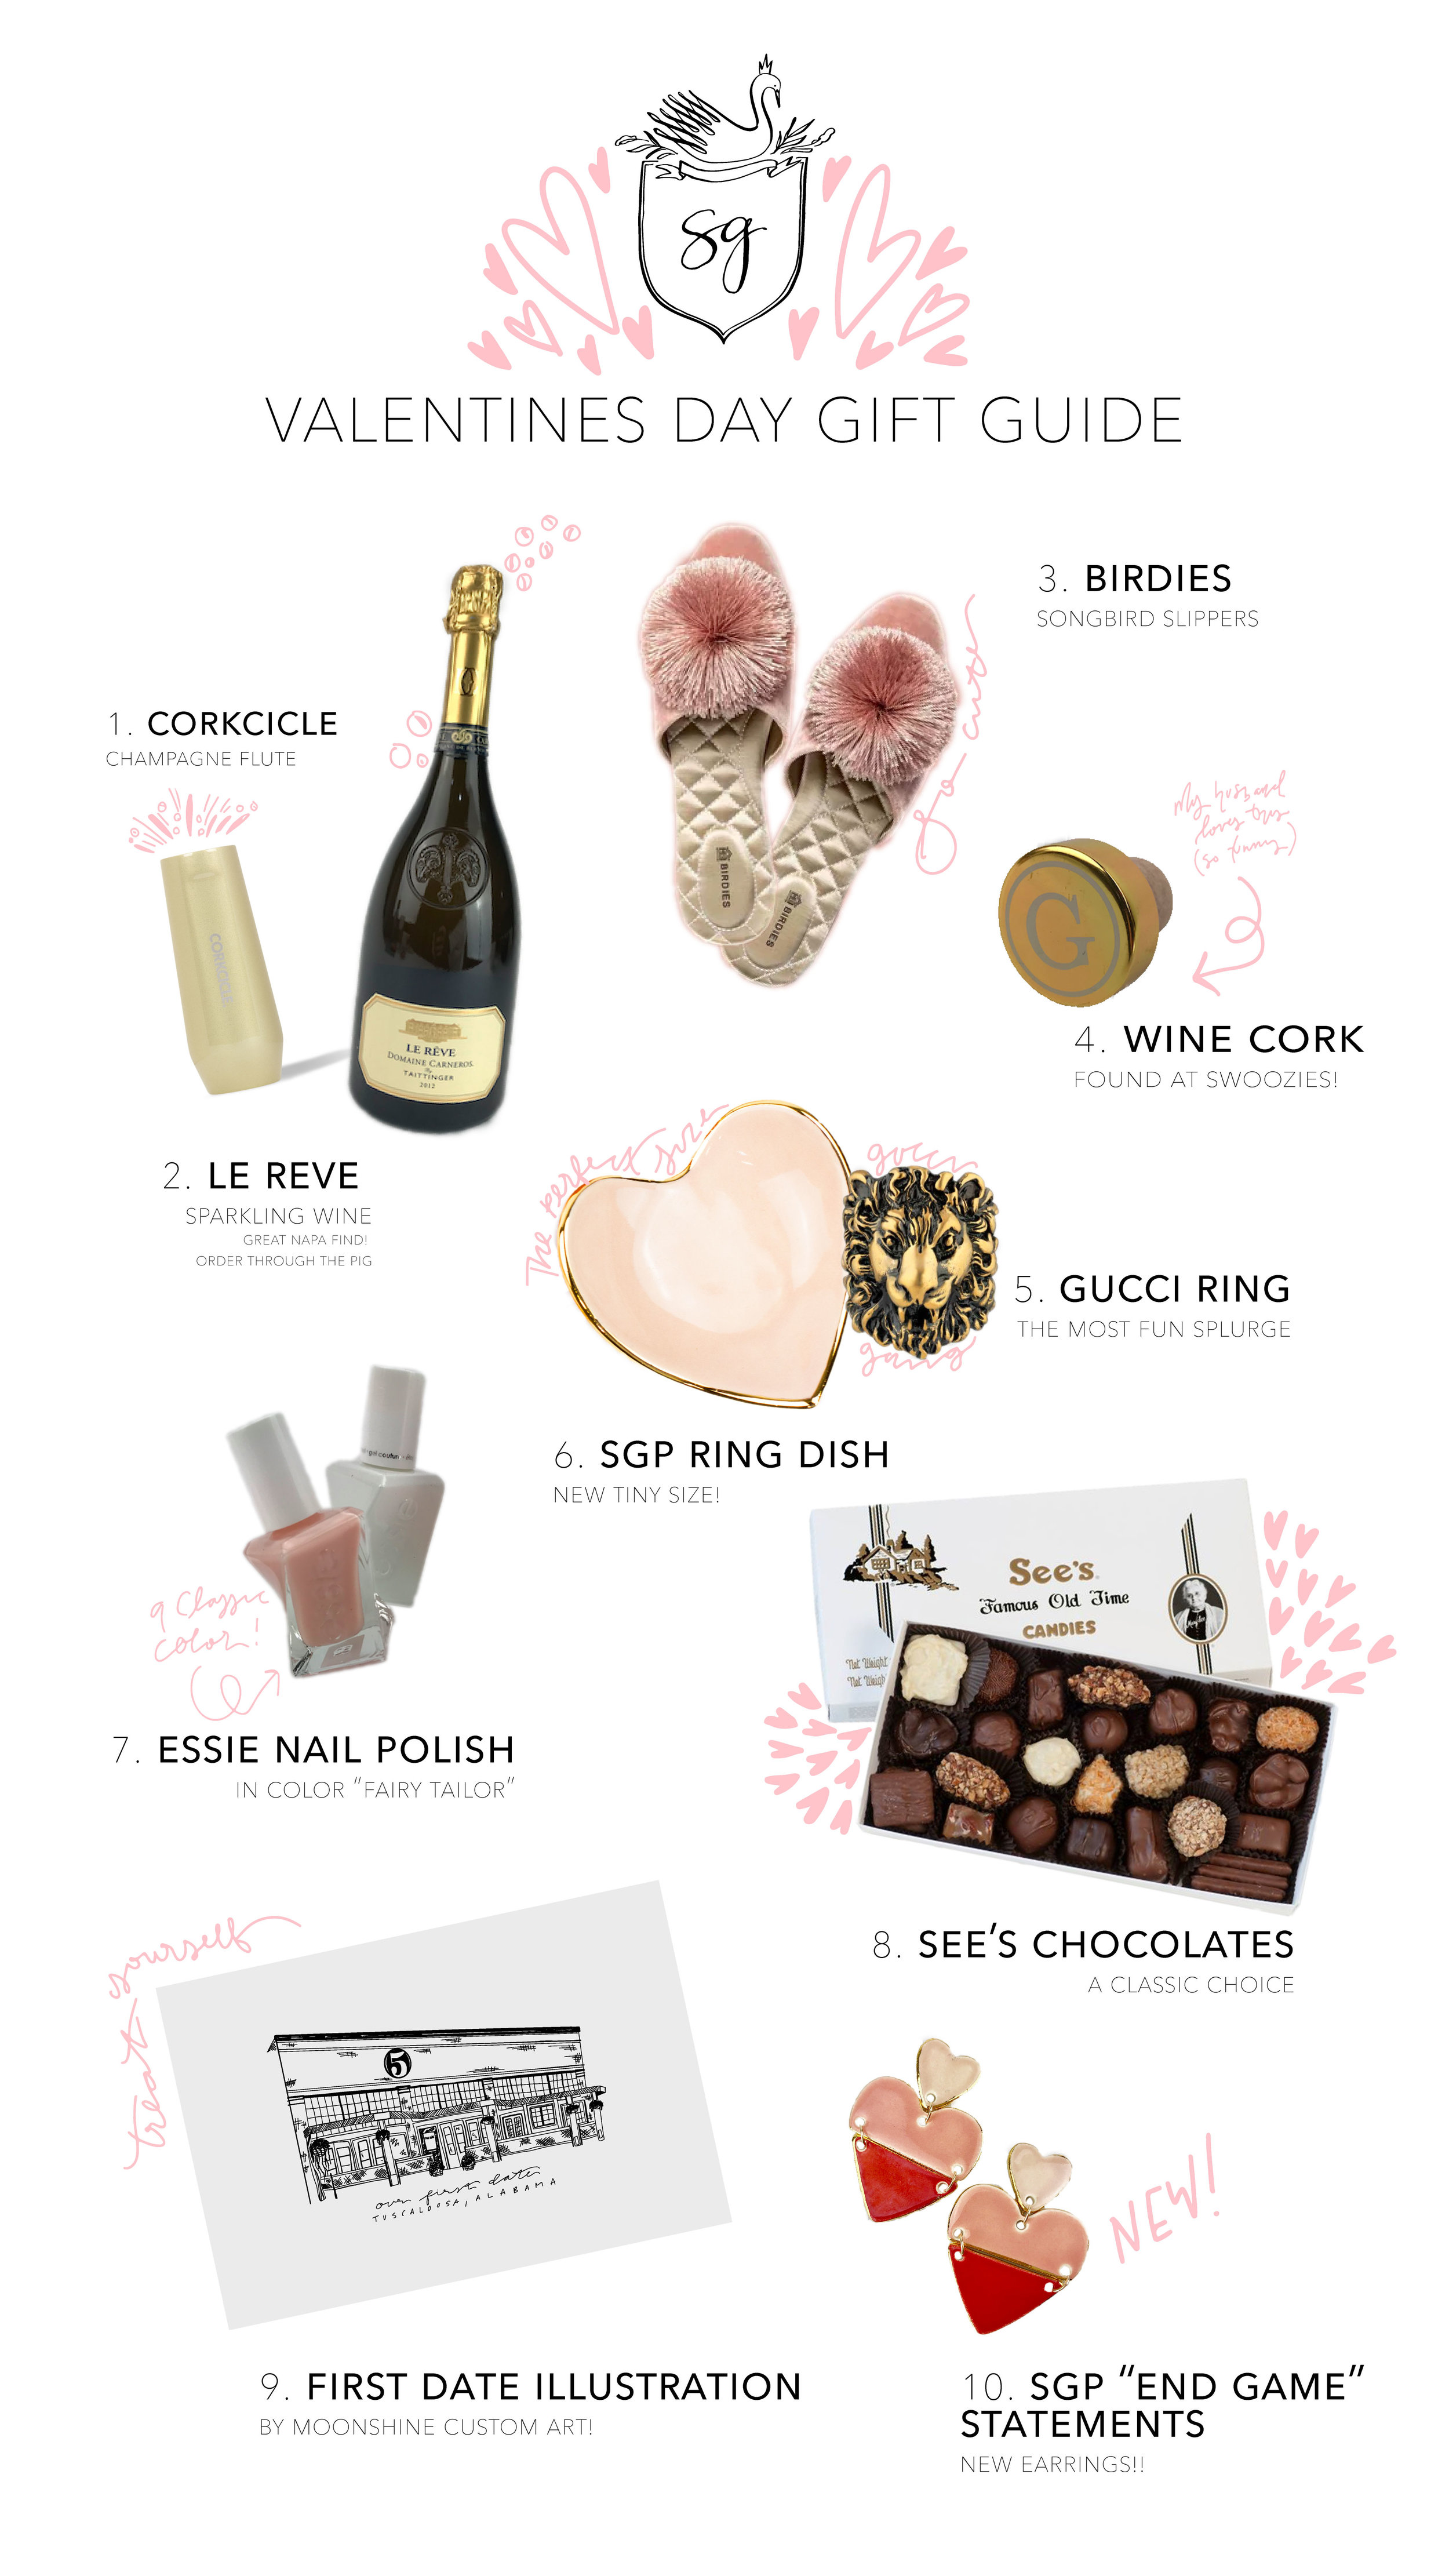 VAalentines-Day-gift-guide.jpg